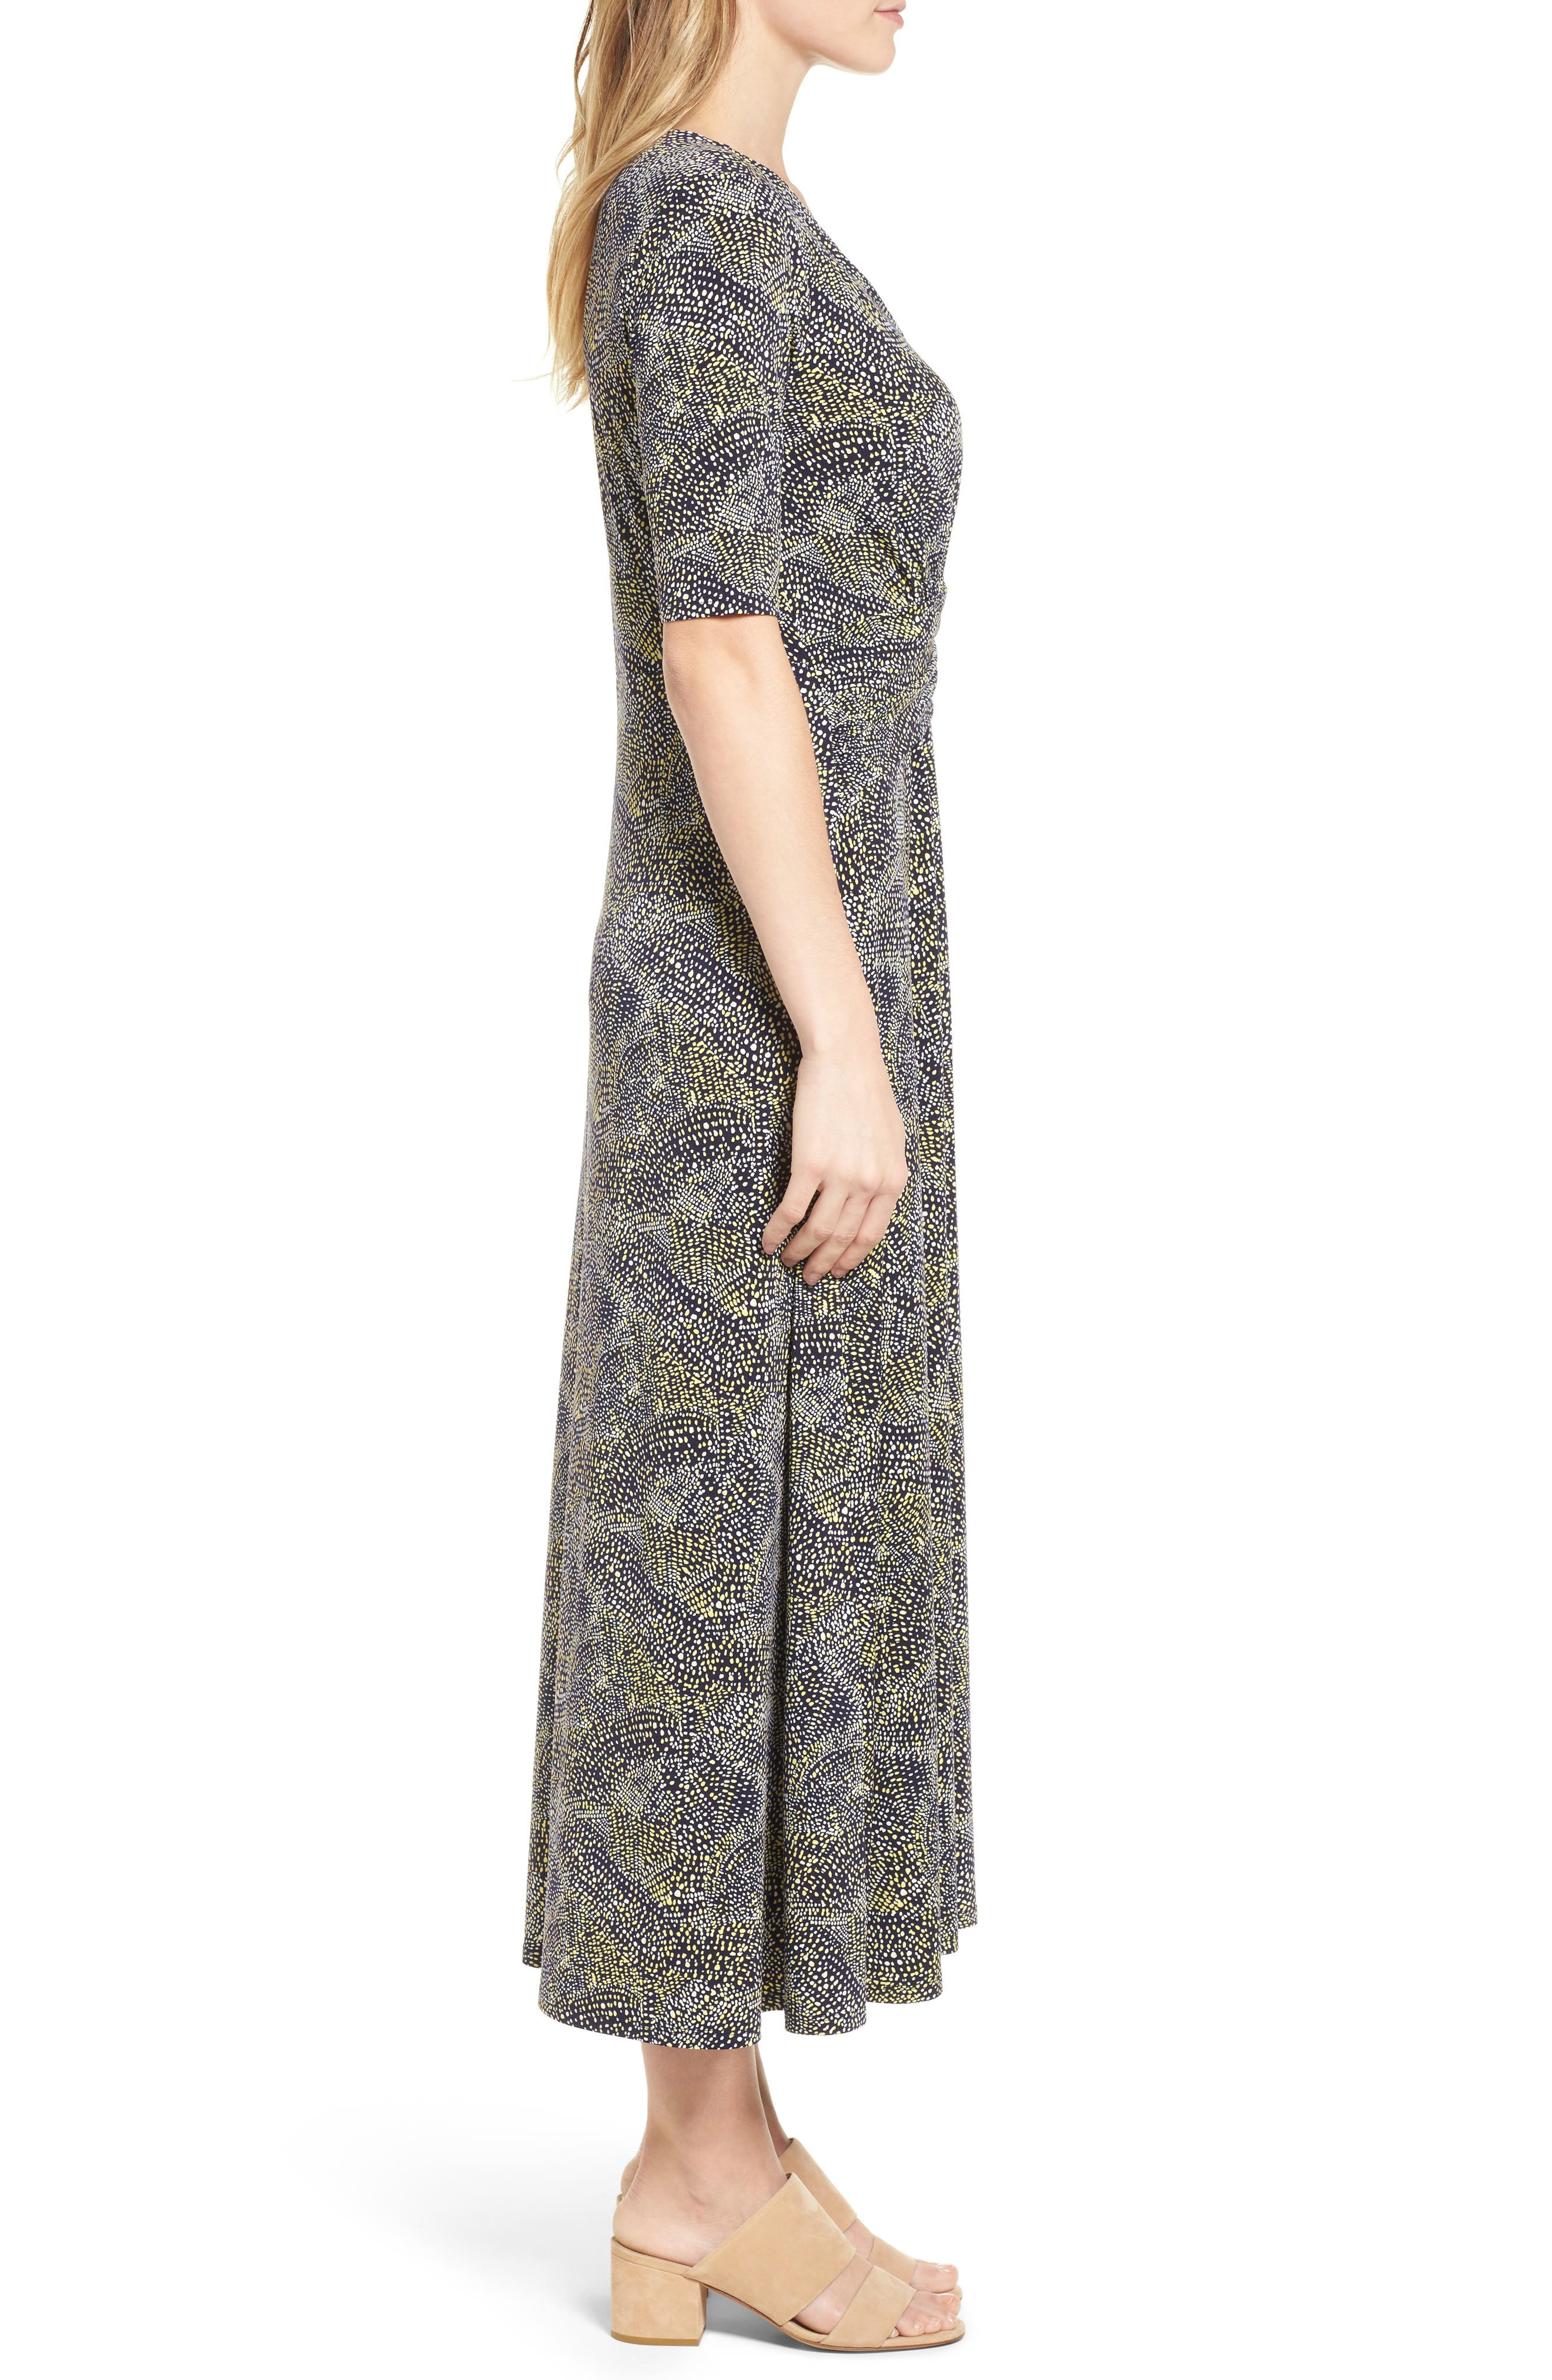 Ruched Speckle Midi Dress,                             Alternate thumbnail 3, color,                             784-Vivid Canary